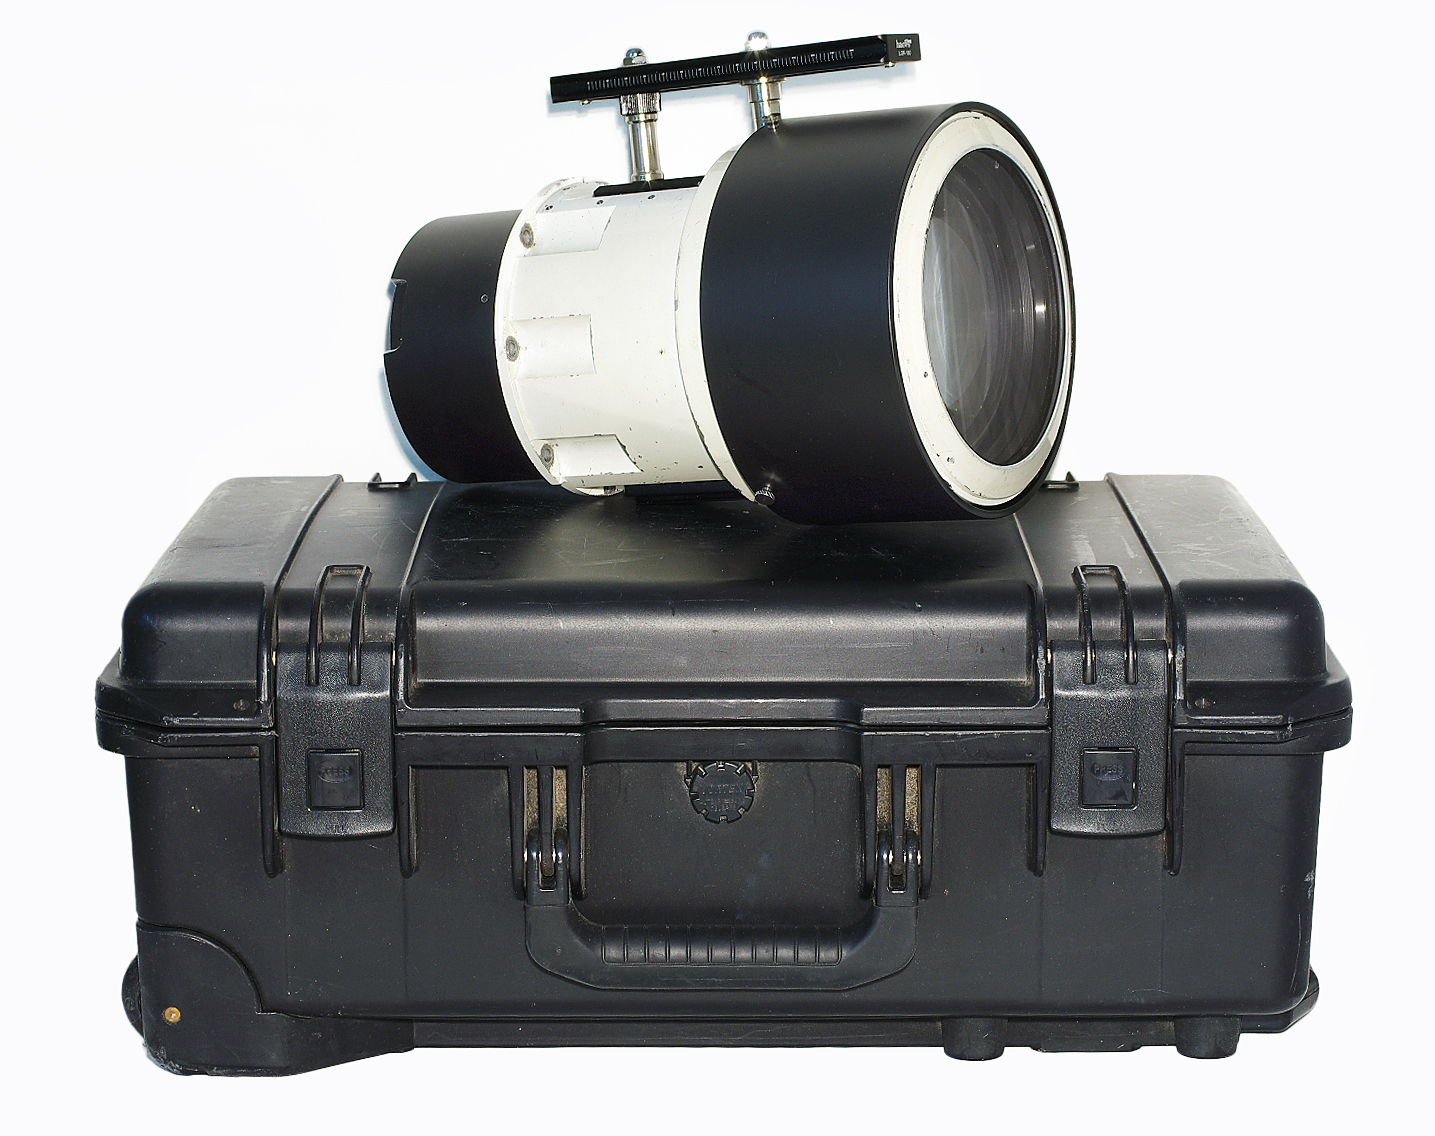 P-Angenieux-1-5-210-mm-Professional-re-mounted-to-Fujifilm-GFX